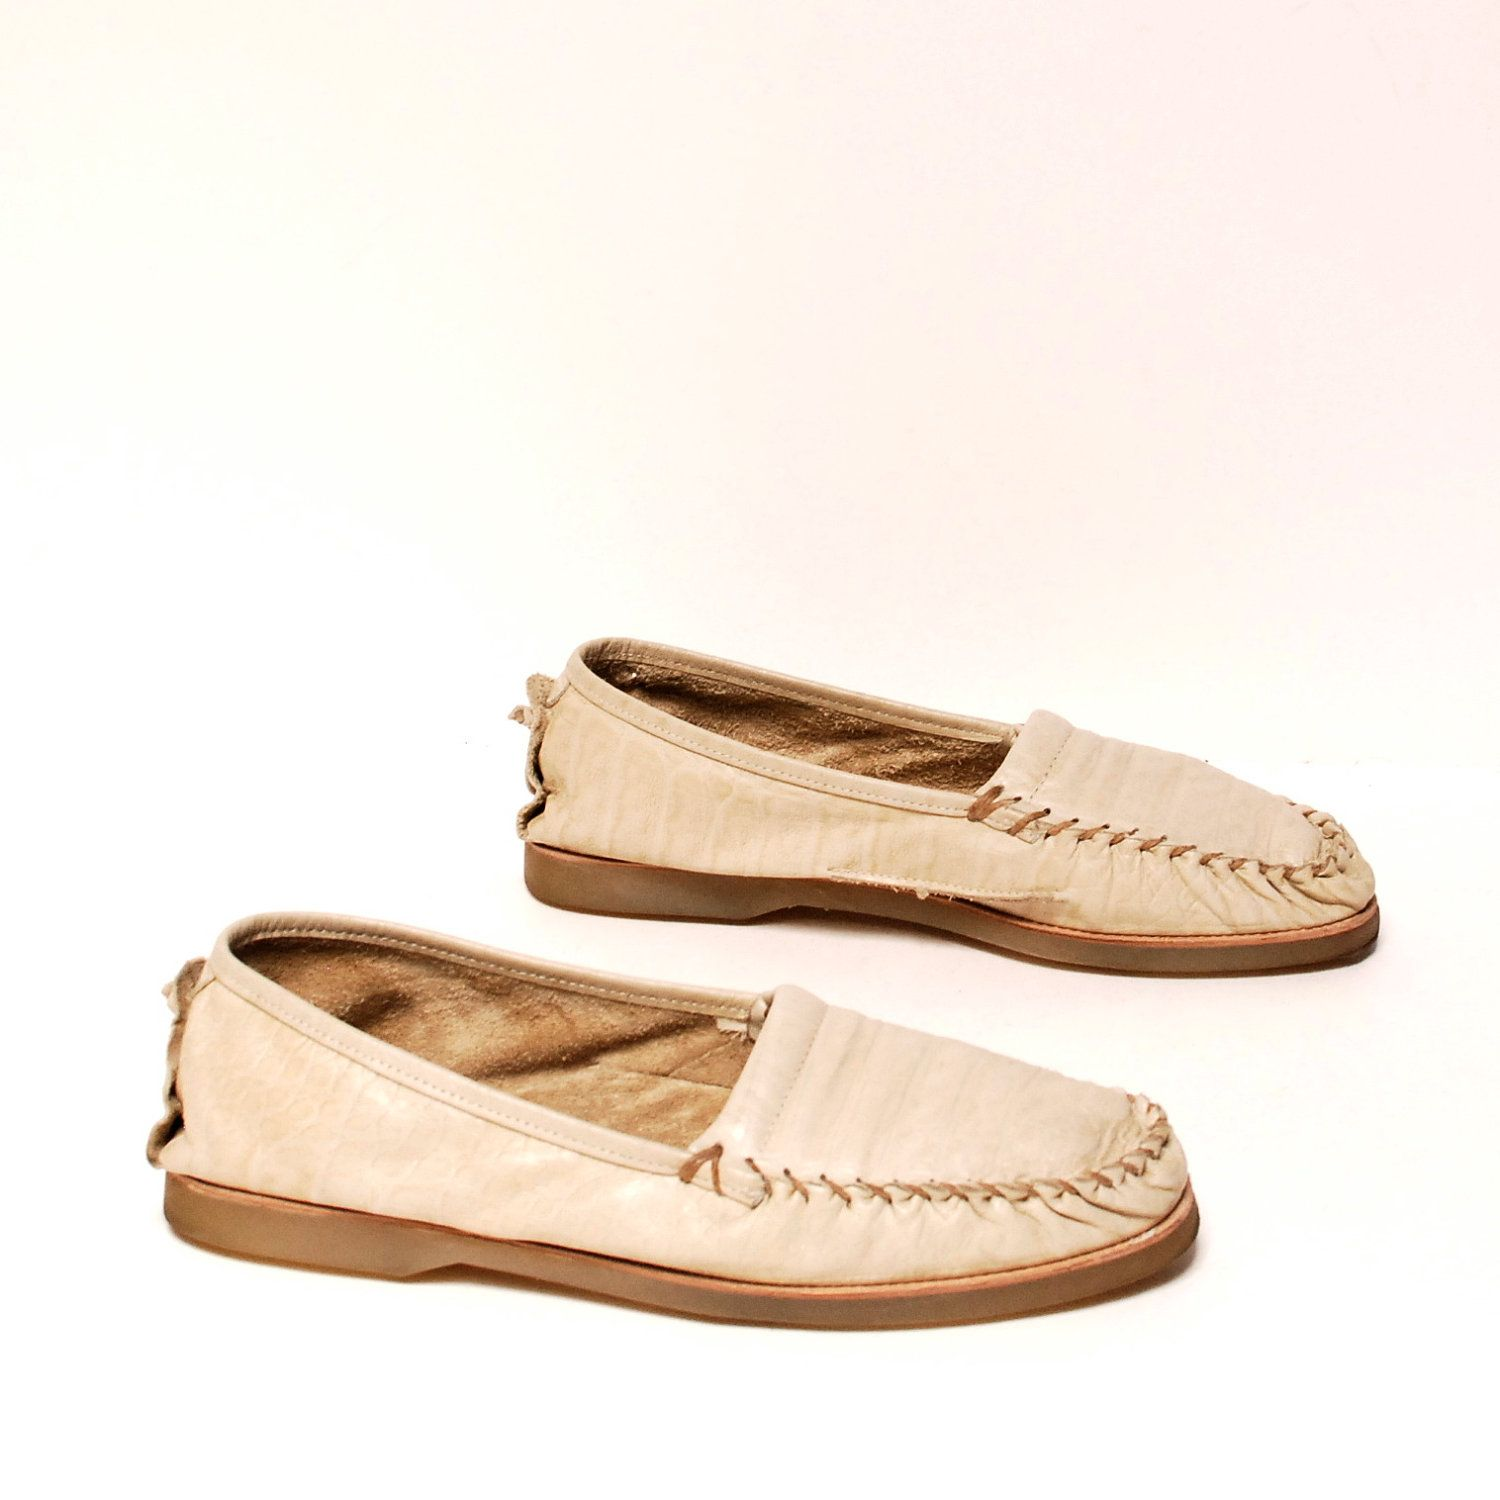 mens size 10 MOCCASIN cream white leather 80s ZODIAC brand loafers